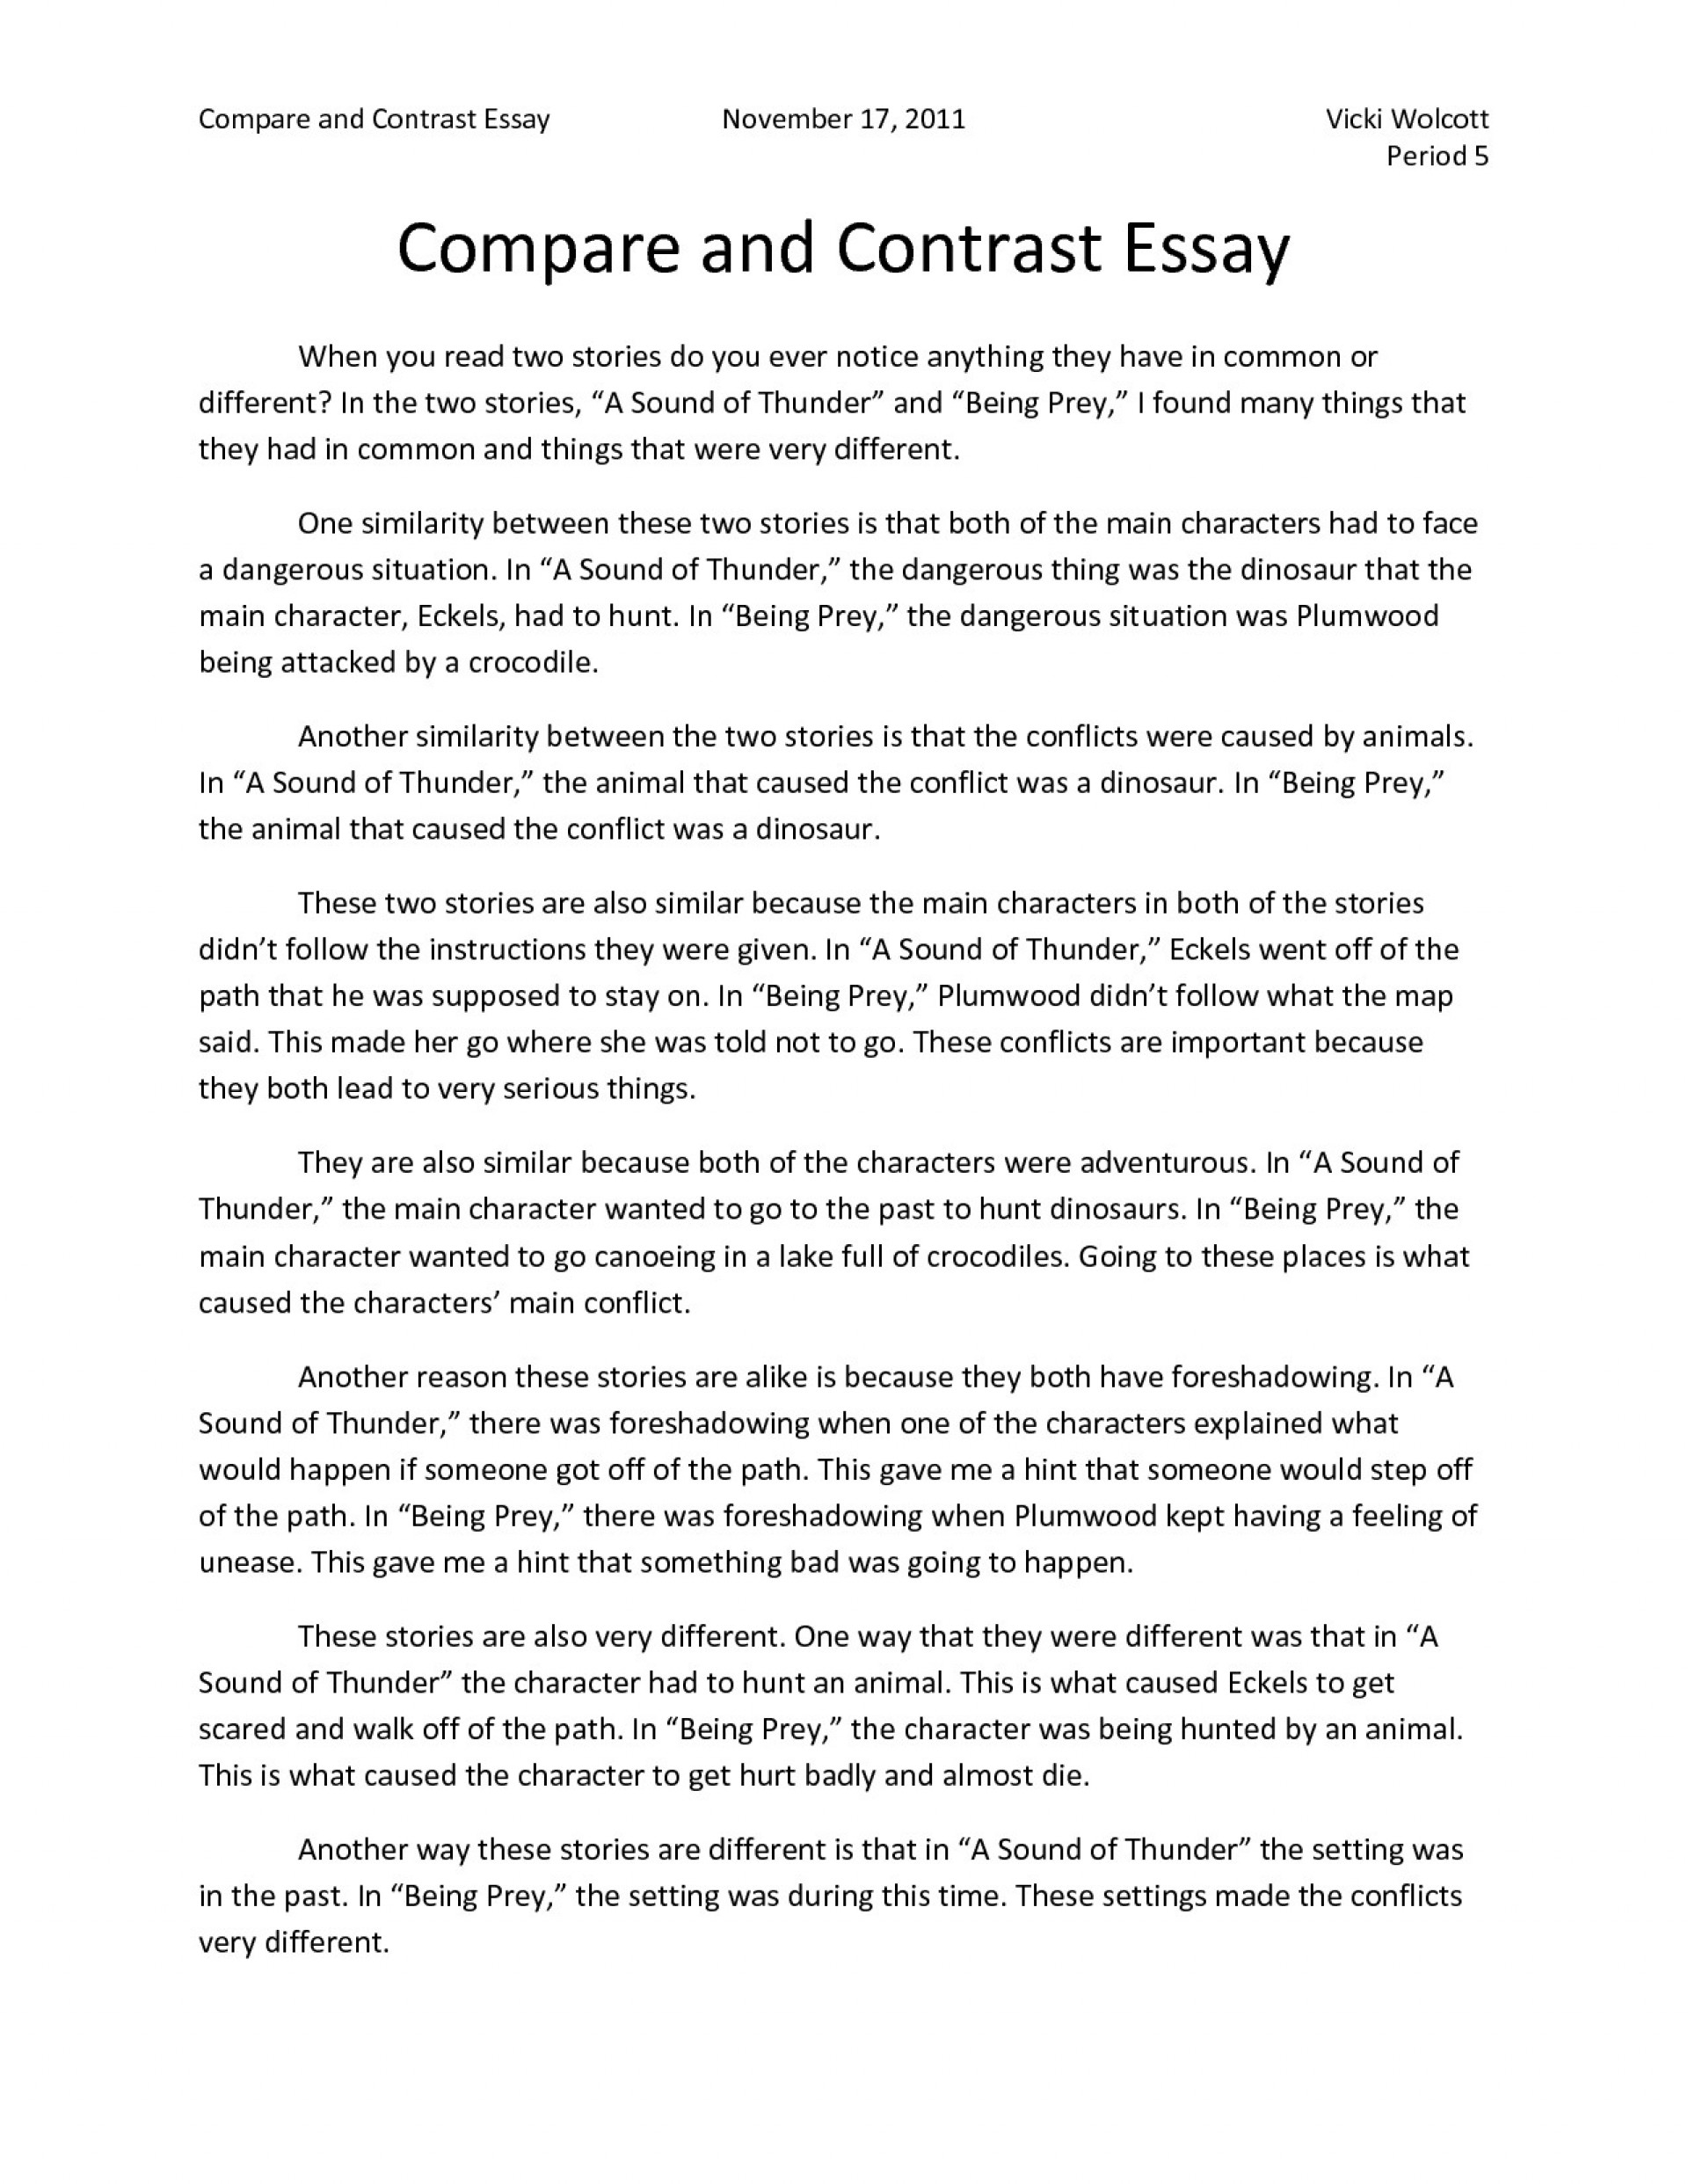 006 Comparing And Contrasting Essay Example Satire Examples Of Comparison Contrast Essays Com How To Write Outstanding A Compare Outline Powerpoint Introduction 1920